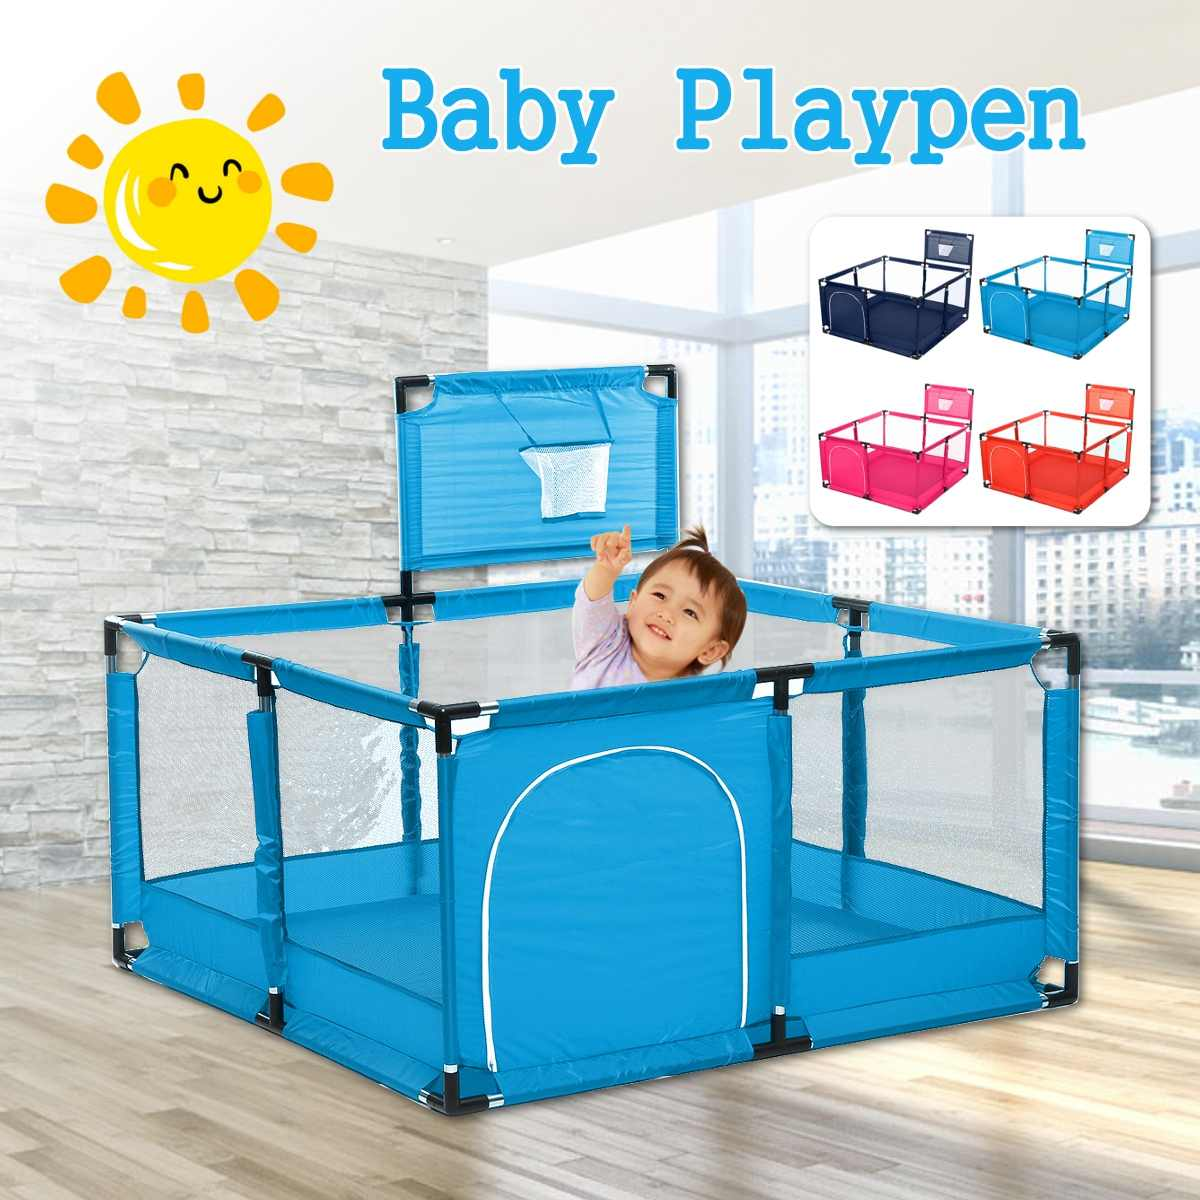 Bioby Baby Playpen <font><b>Children</b></font> Toddler Kids Safety Fence Indoor Outdoor Play Pen Ocean Ball Pool Safety Barrier with Basket image